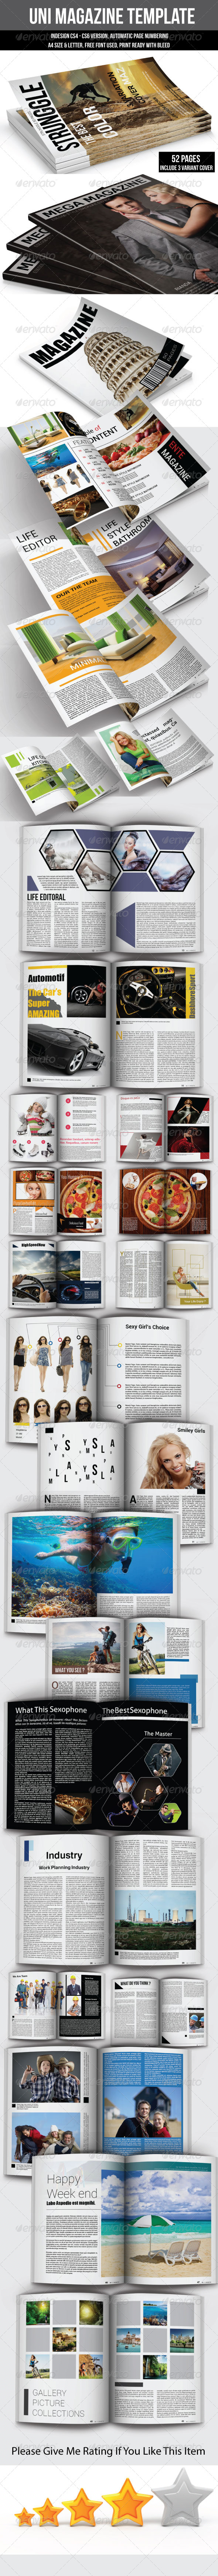 GraphicRiver UNI Magazine Template 6653052